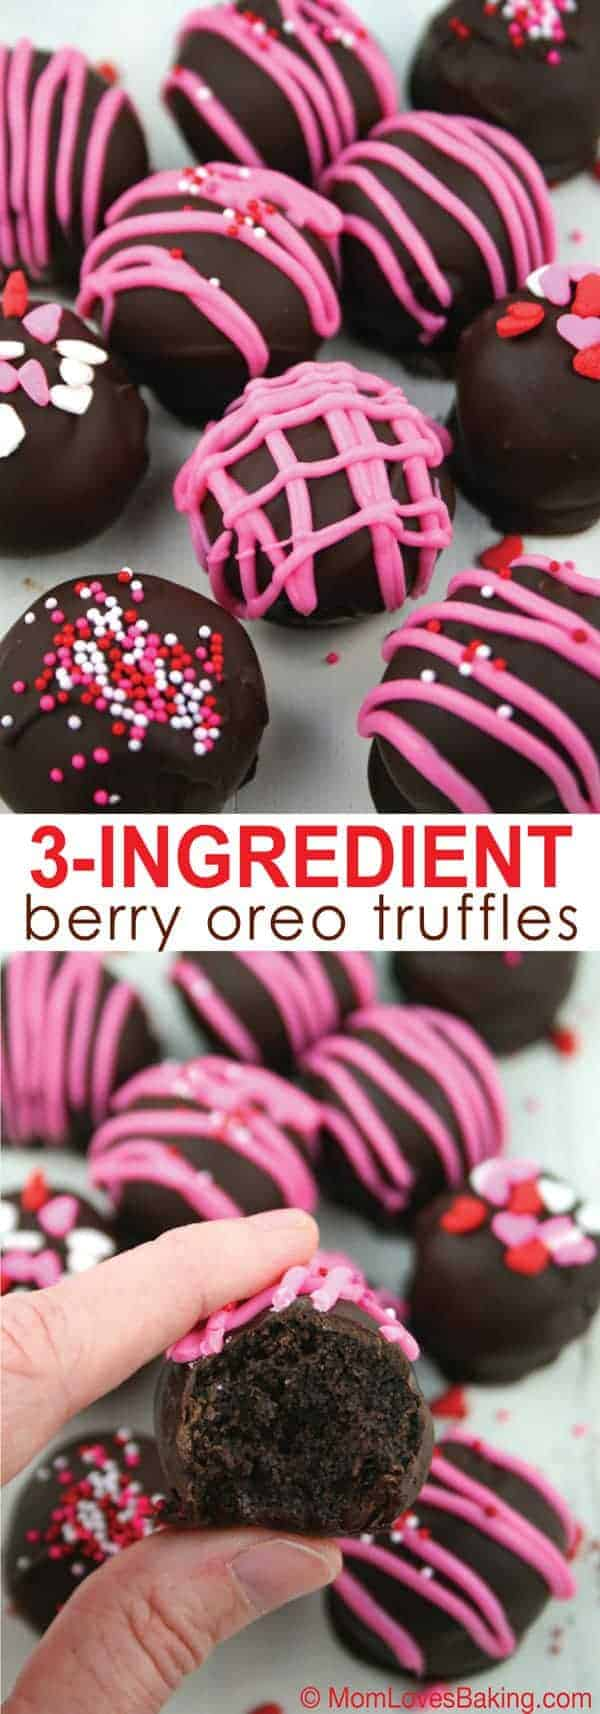 Berry-Oreo-Truffles-Long